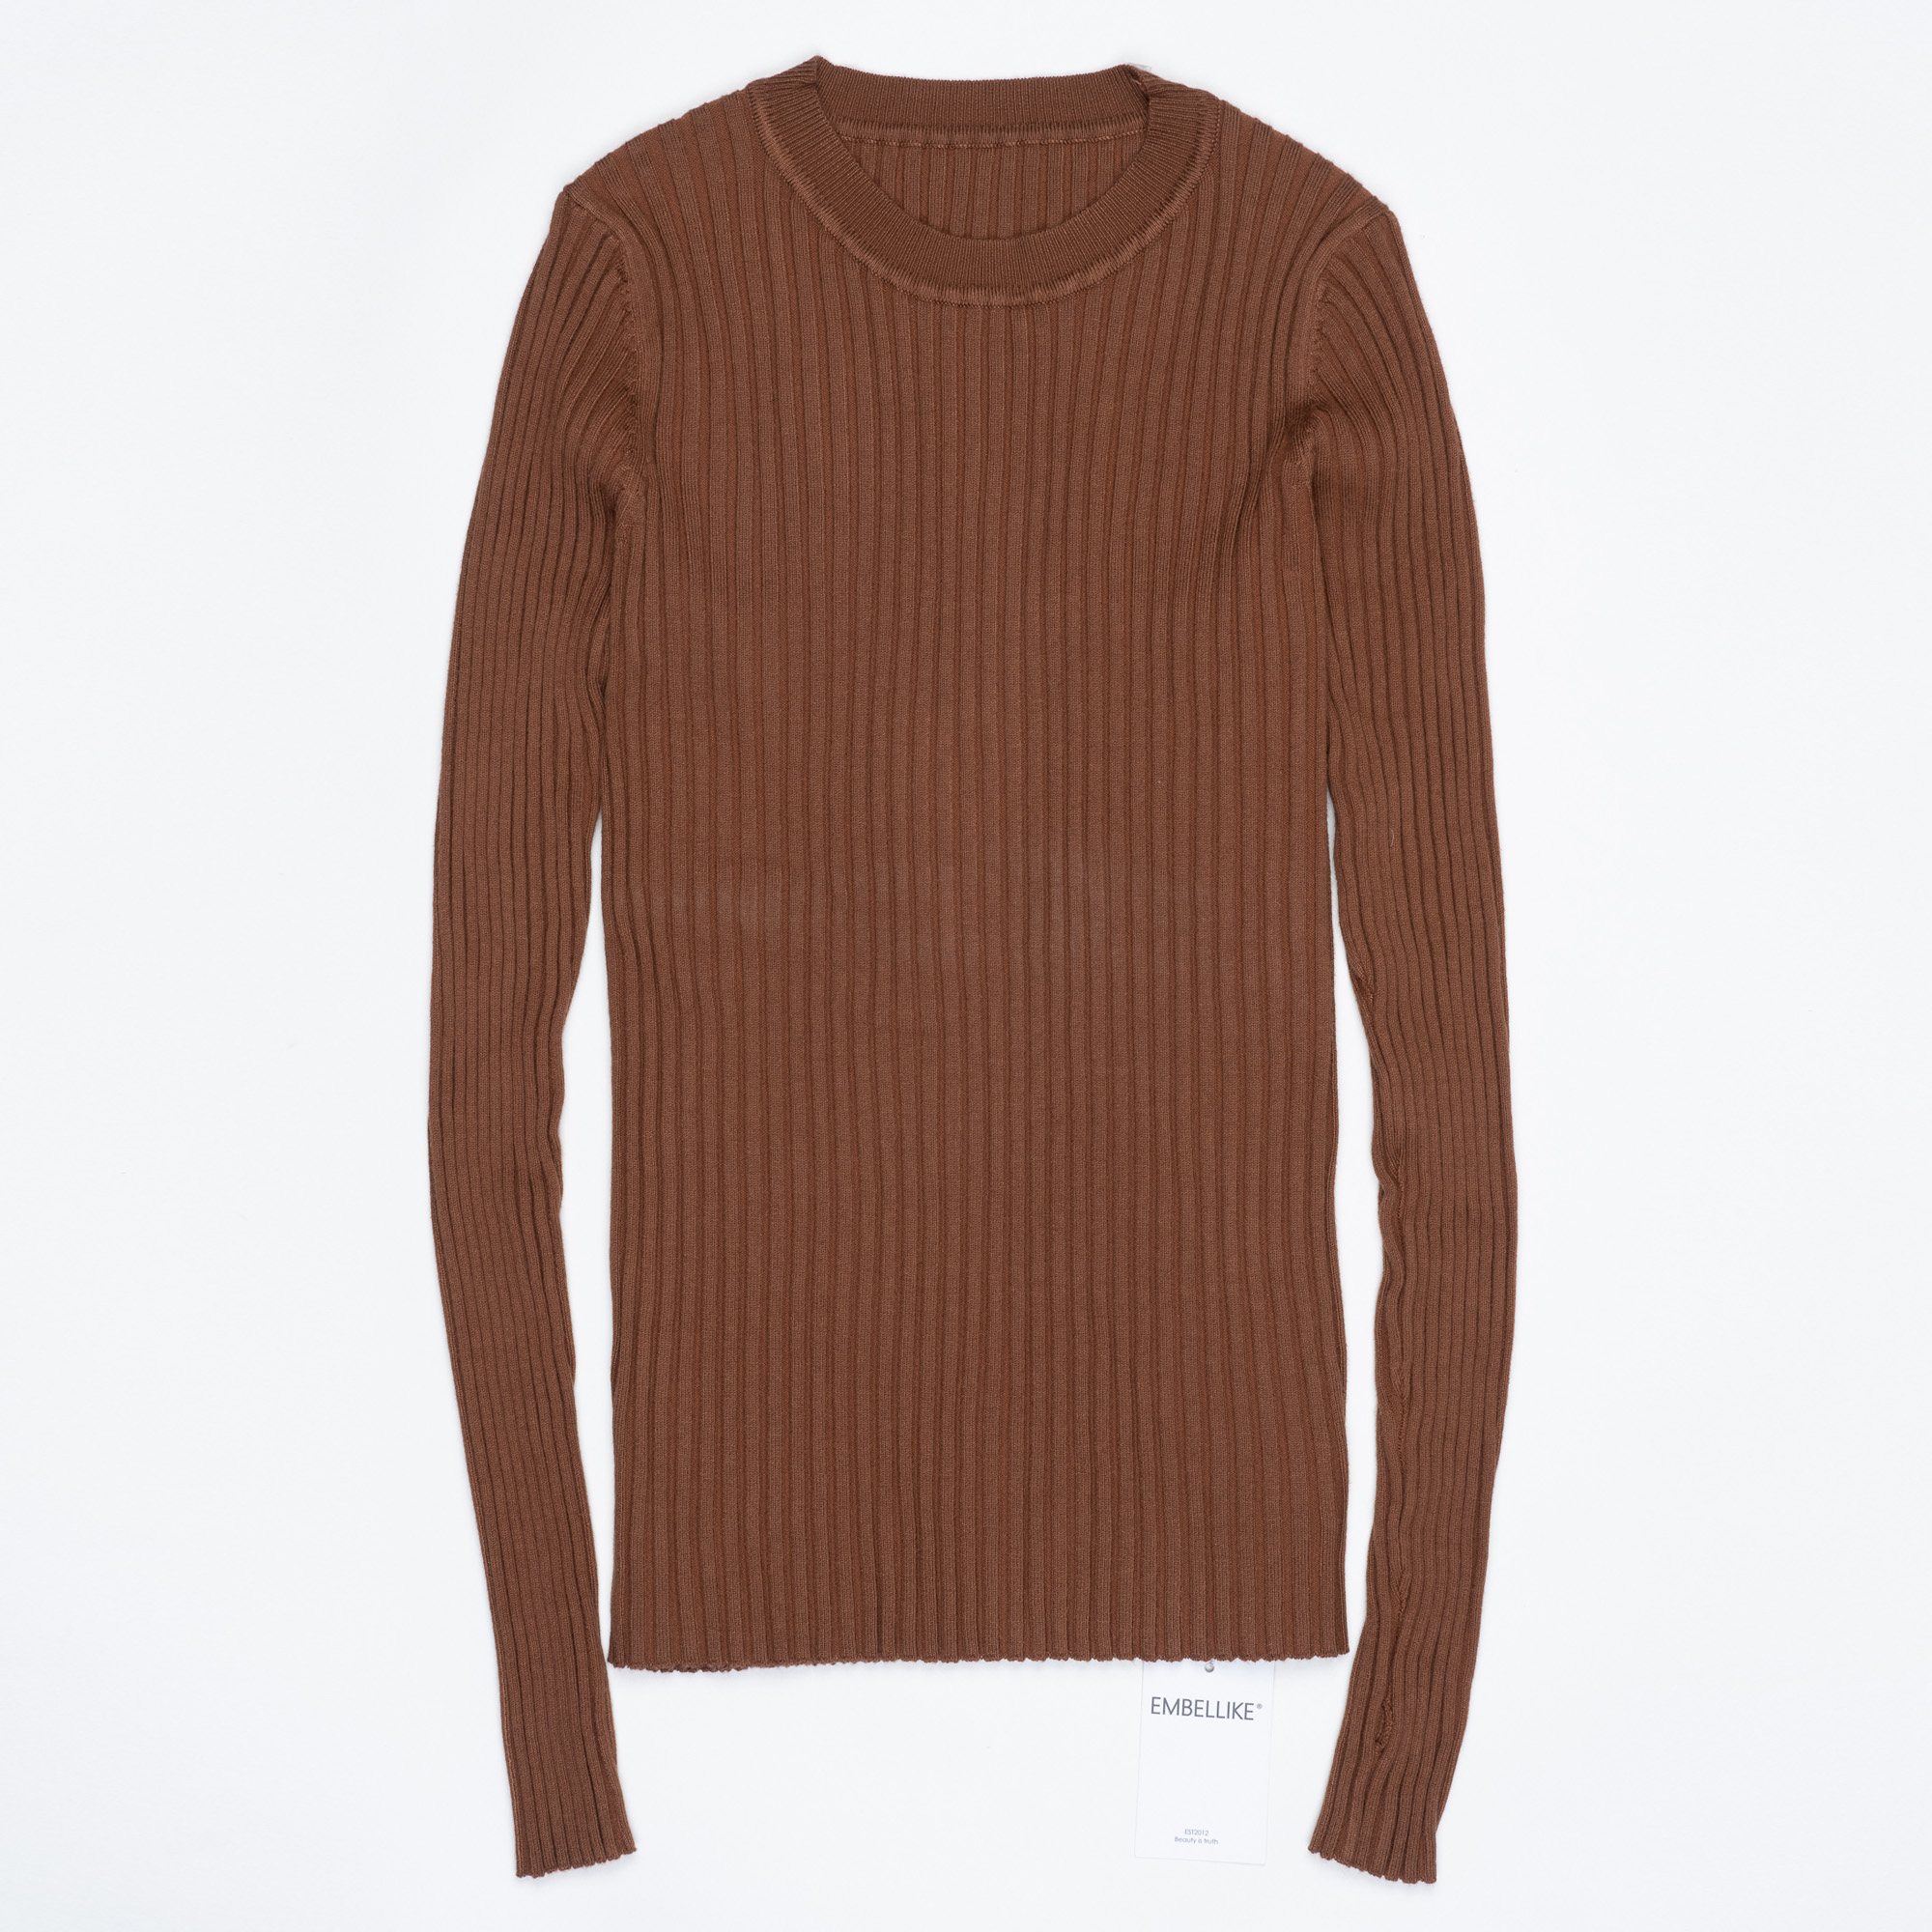 Women Sweater Pullover Basic Ribbed Sweaters Cotton Tops Knitted Solid Crew Neck With Thumb Hole 23